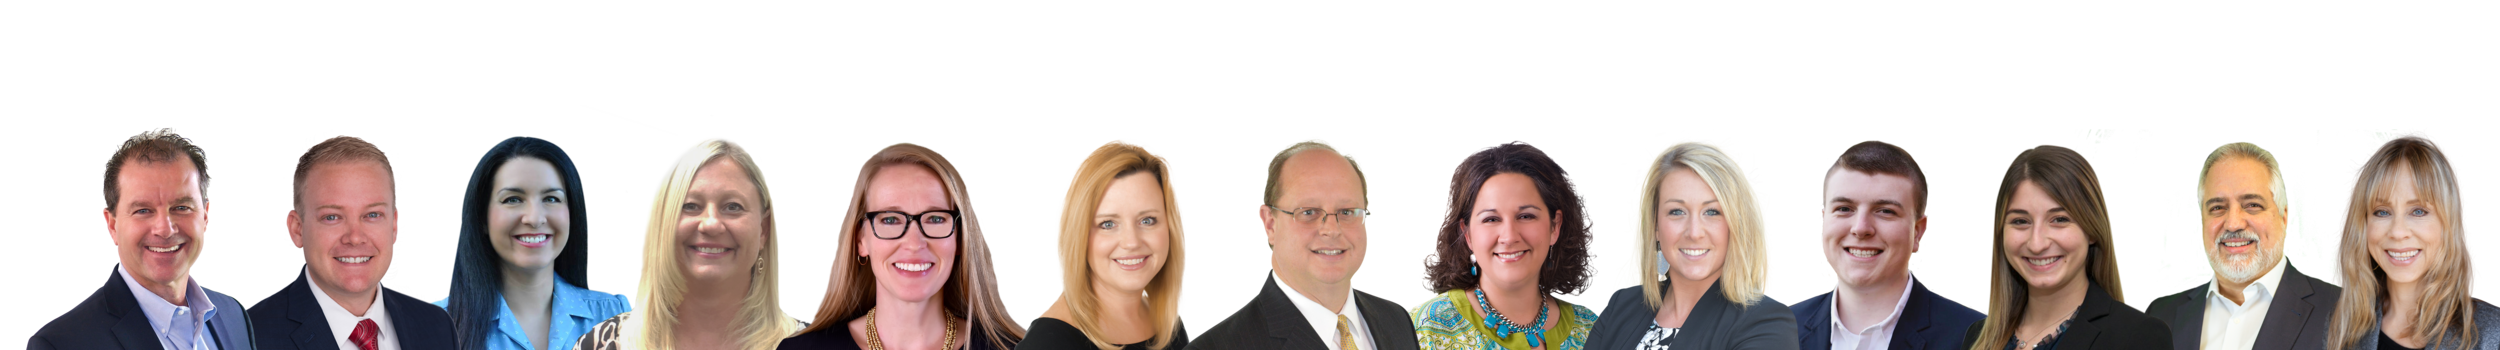 The Carl Hawthorne Team is a select group of real estate professionals who are passionate about service and negotiating the best outcome for their clients and your referrals. Our team sold 176 homes last year from downtown Atlanta to the north Georgia mountains. You can trust that your referral will receive the best level of service.